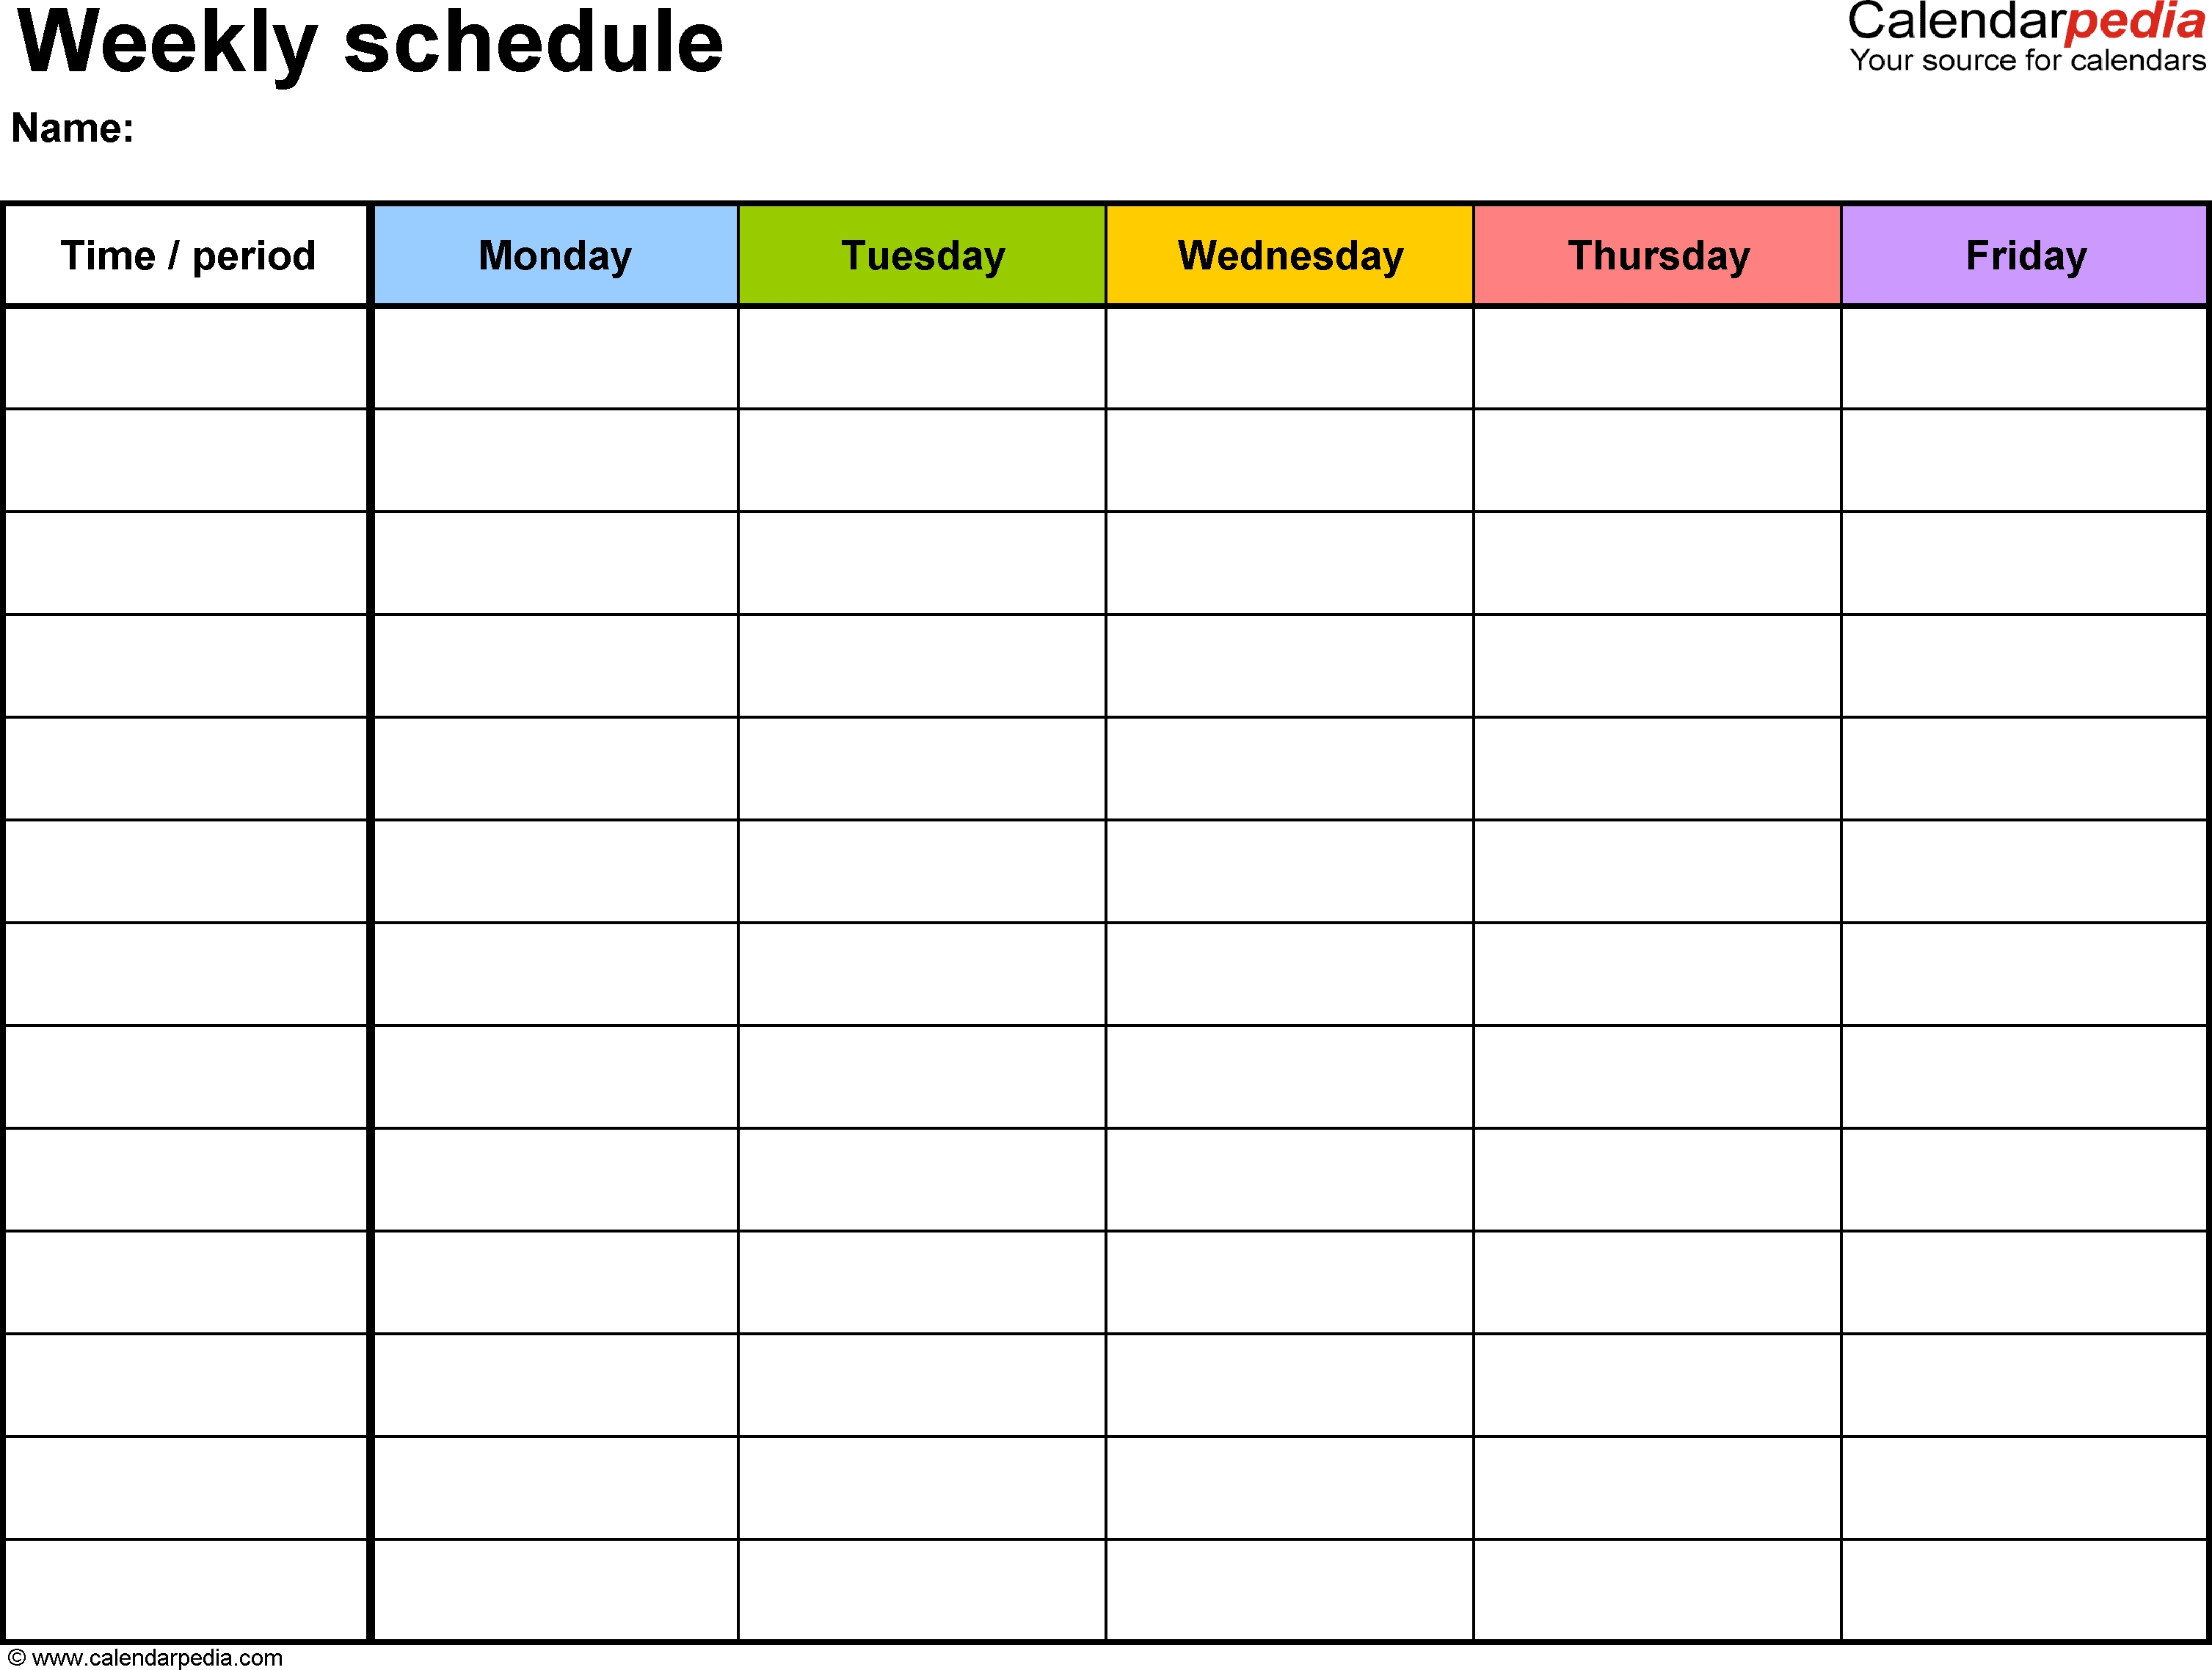 Free Weekly Schedule Templates For Word - 18 Templates Calendar Week Template Word